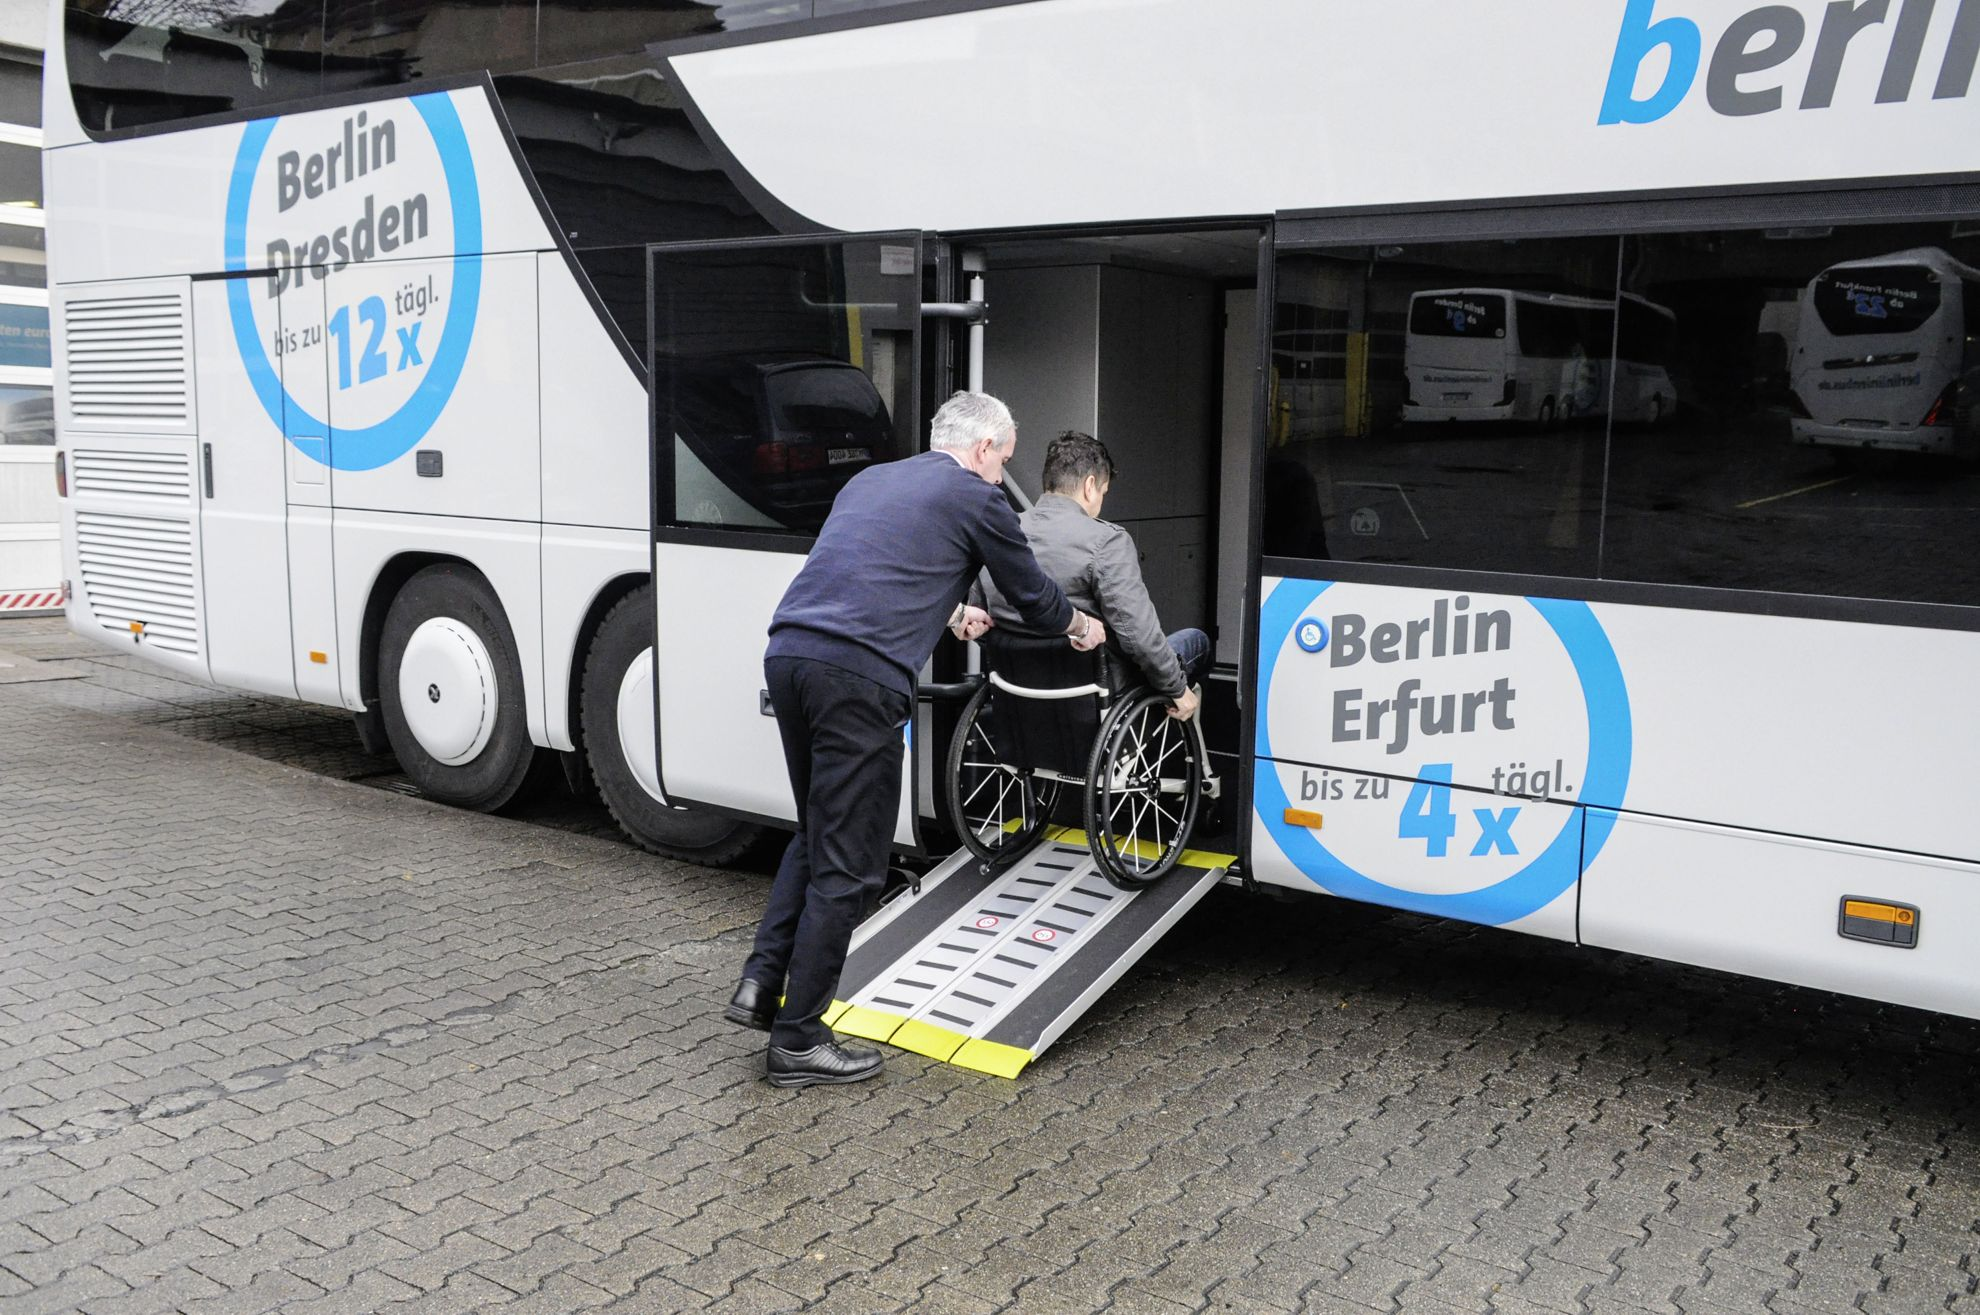 Bus Berlin Erfurt Setra Busses With Patented Handicapped Lift